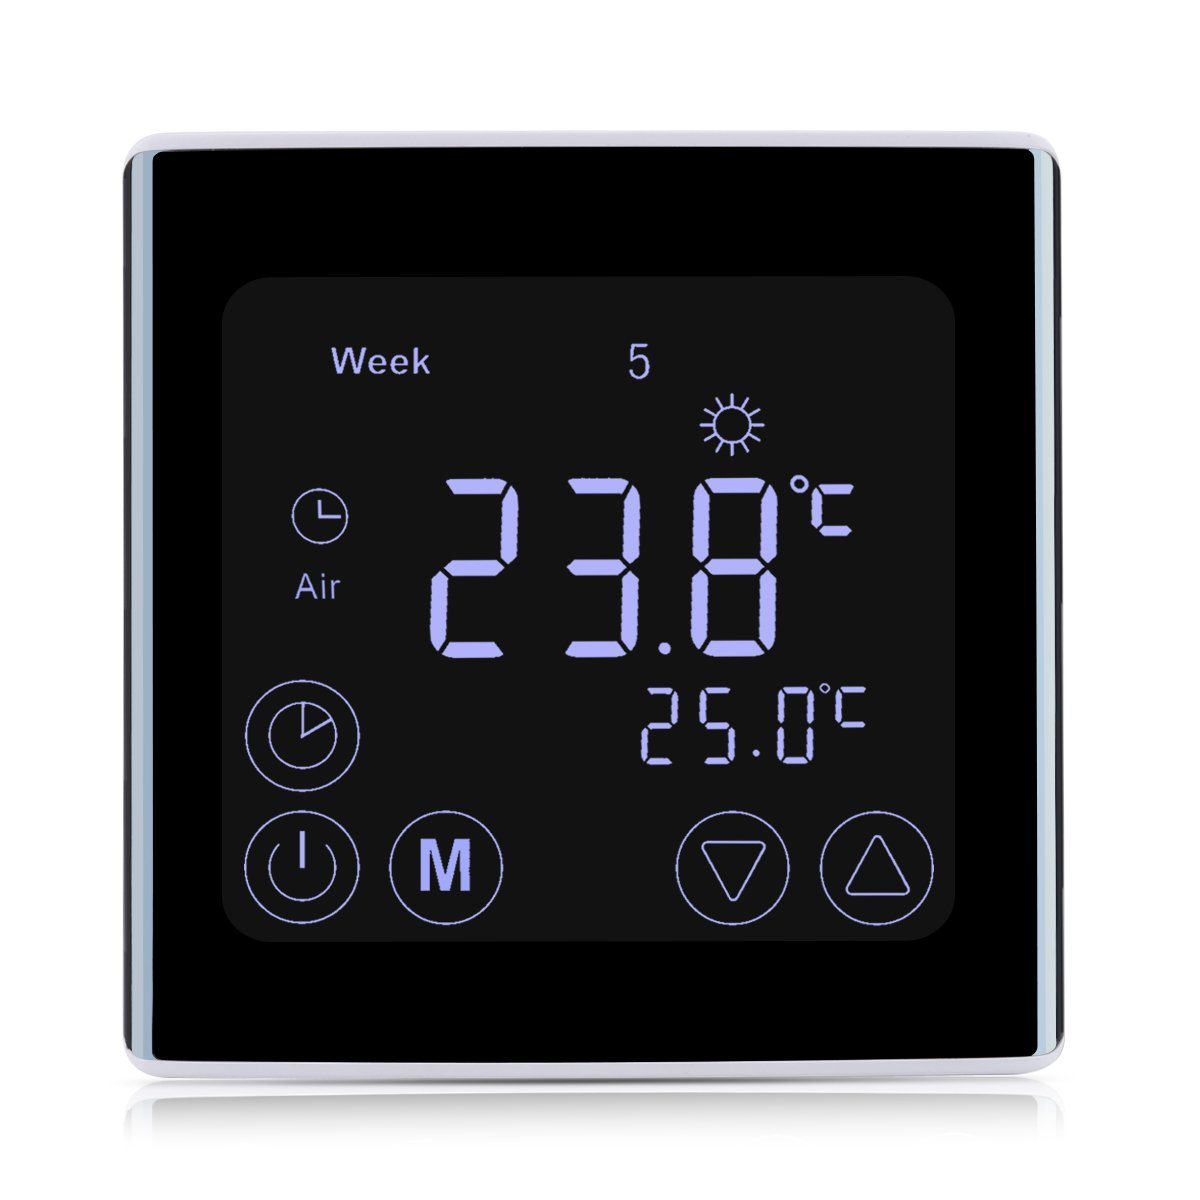 floureon thermostat num rique r glable d 39 ambiance programmable sans fil avec ebay. Black Bedroom Furniture Sets. Home Design Ideas